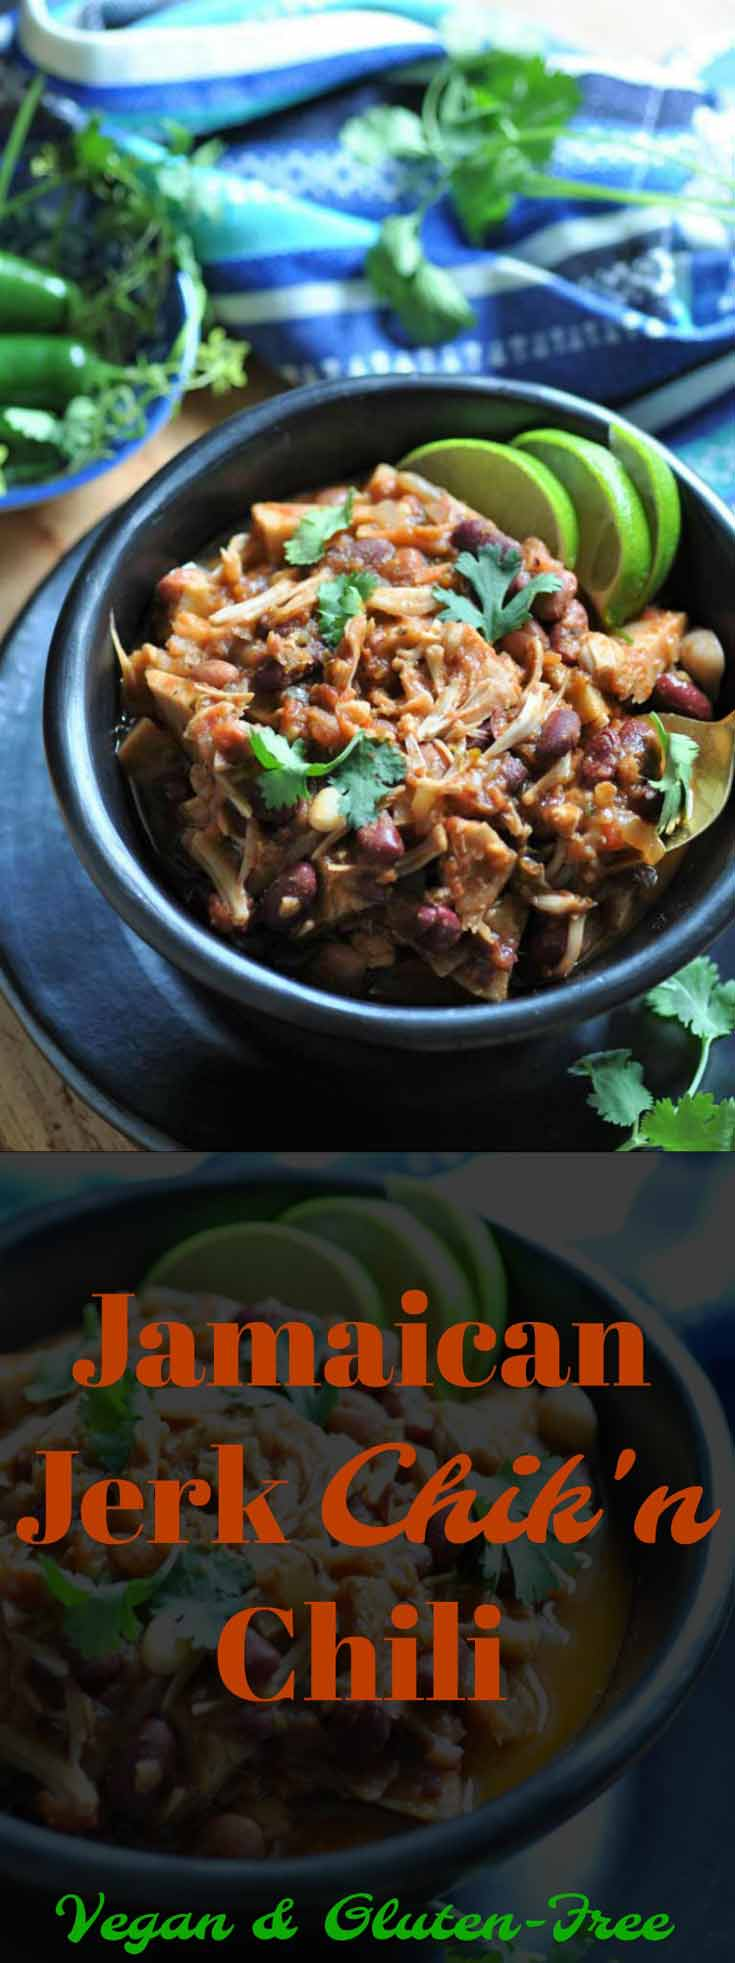 Jamaican Jerk Chik'n Chili! Jerk spices and jackfruit are the stars of this wonderful dinner favorite.